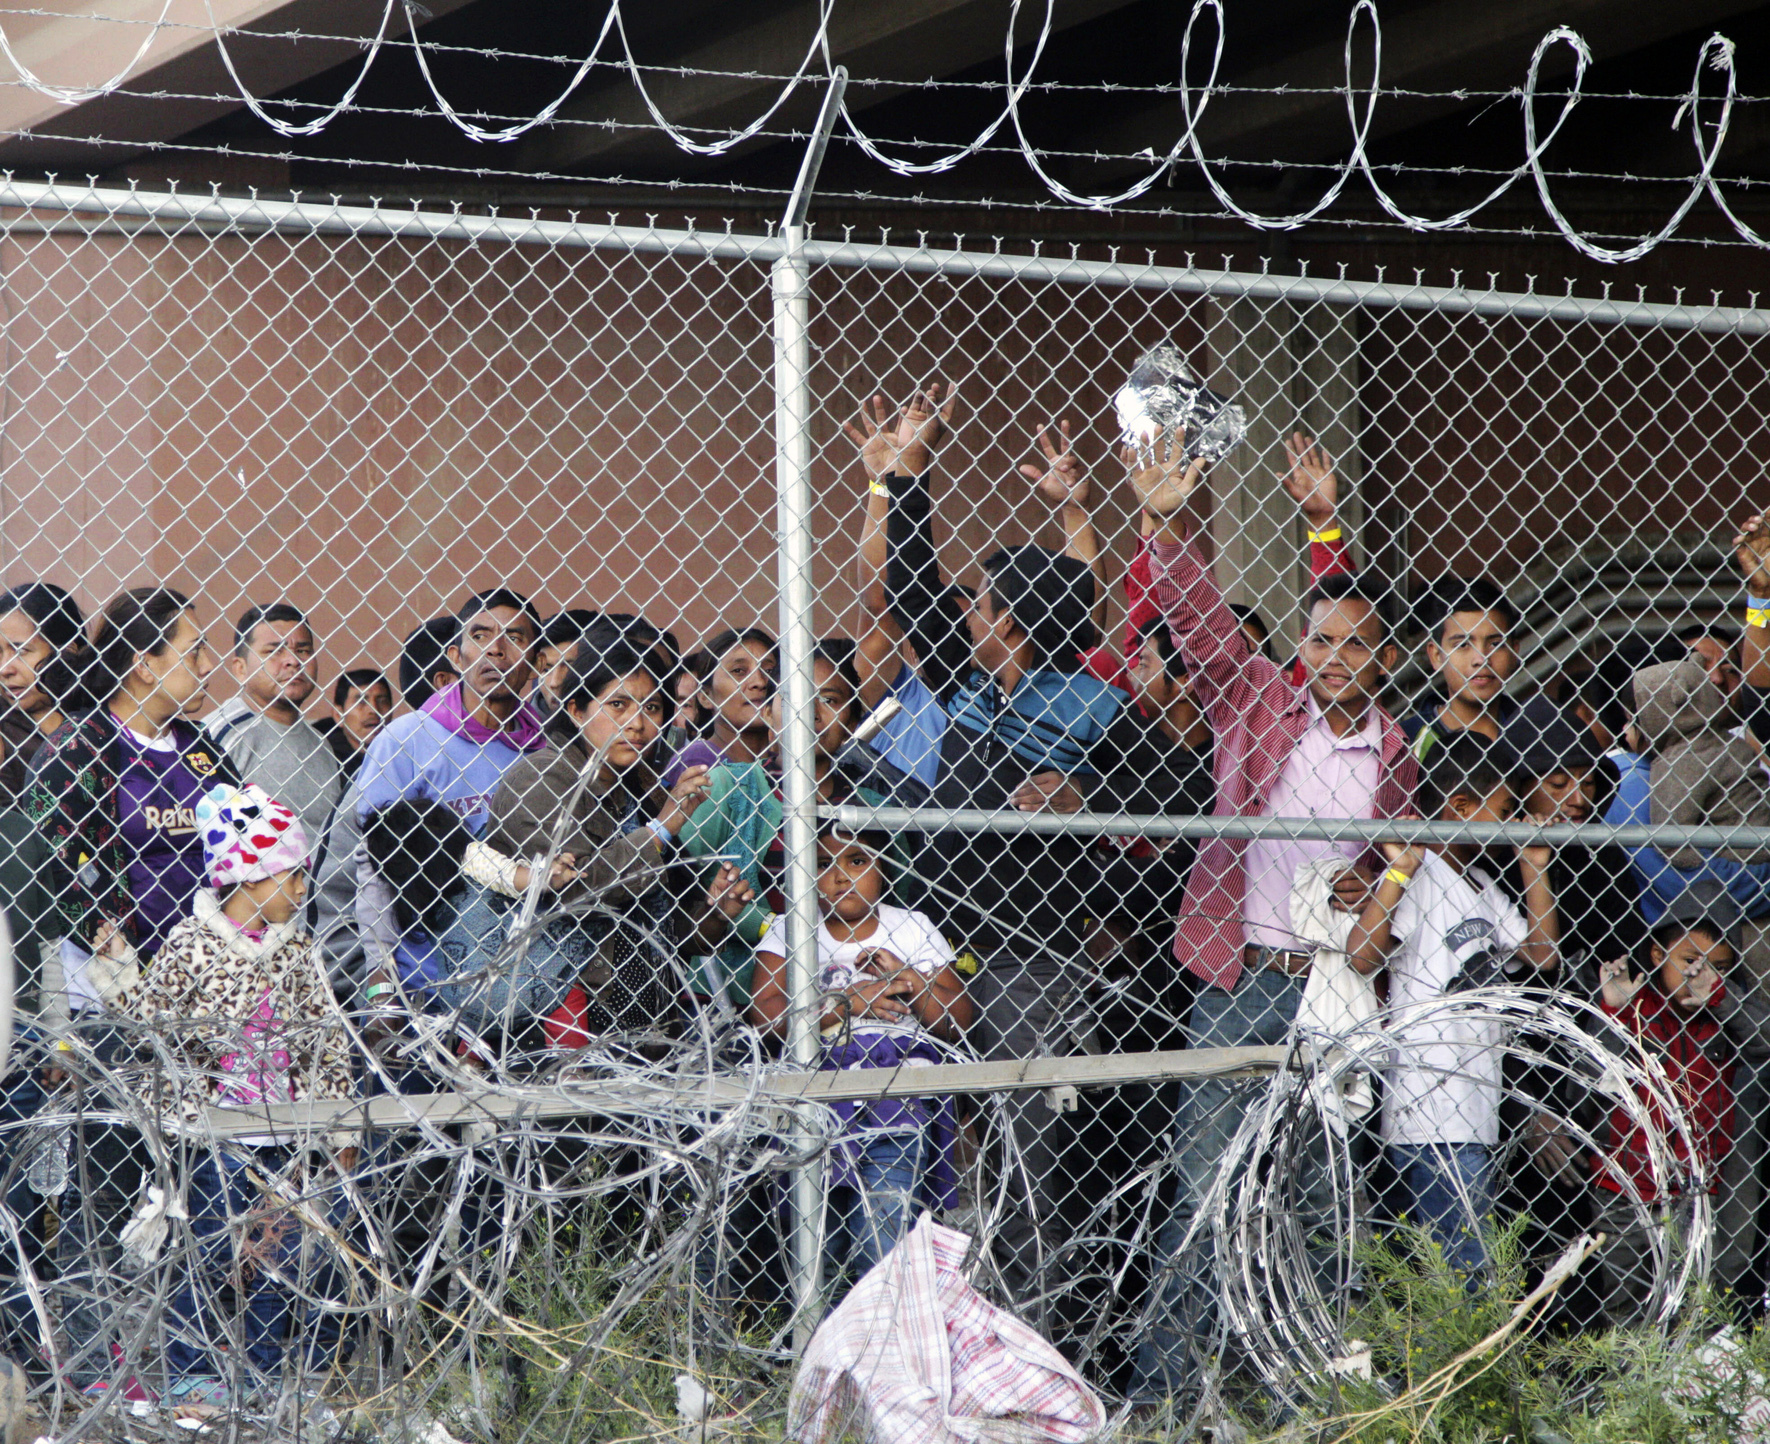 Government: Lets end agreement for migrant kid detention